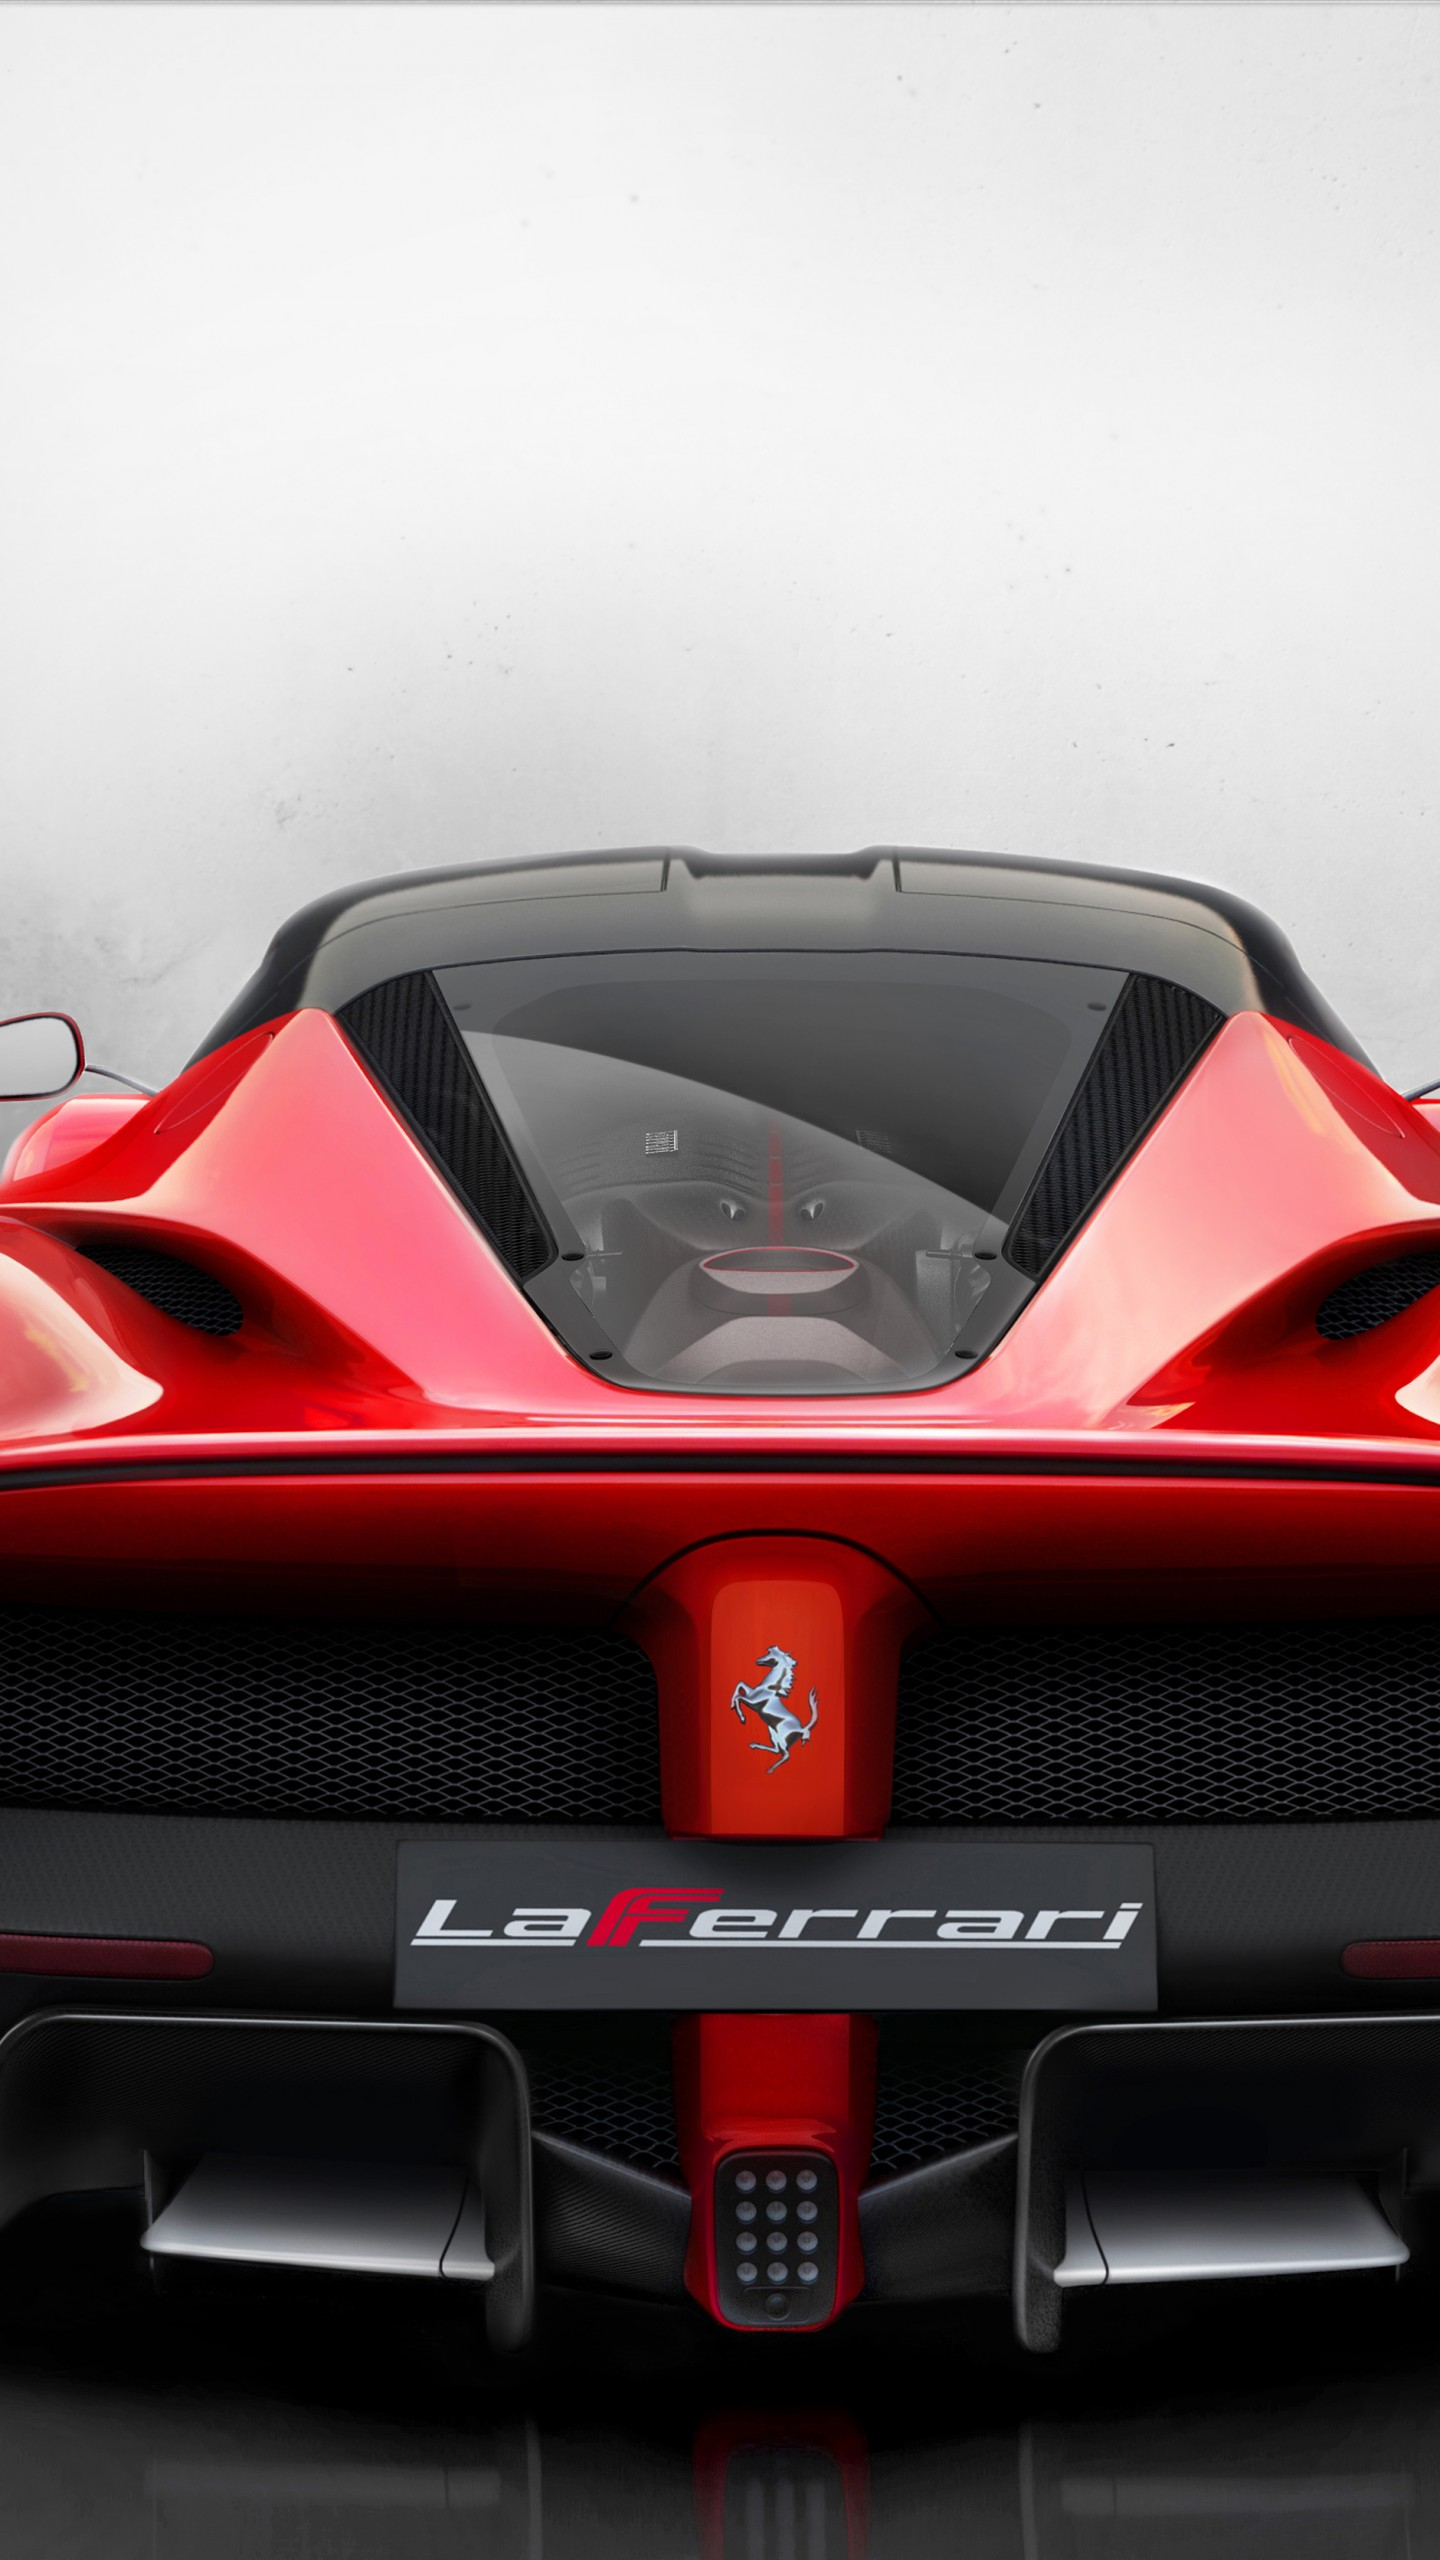 Hd Wallpapers Cars Ferrari Wallpaper Ferrari Laferrari Hybrid Sports Car Ferrari